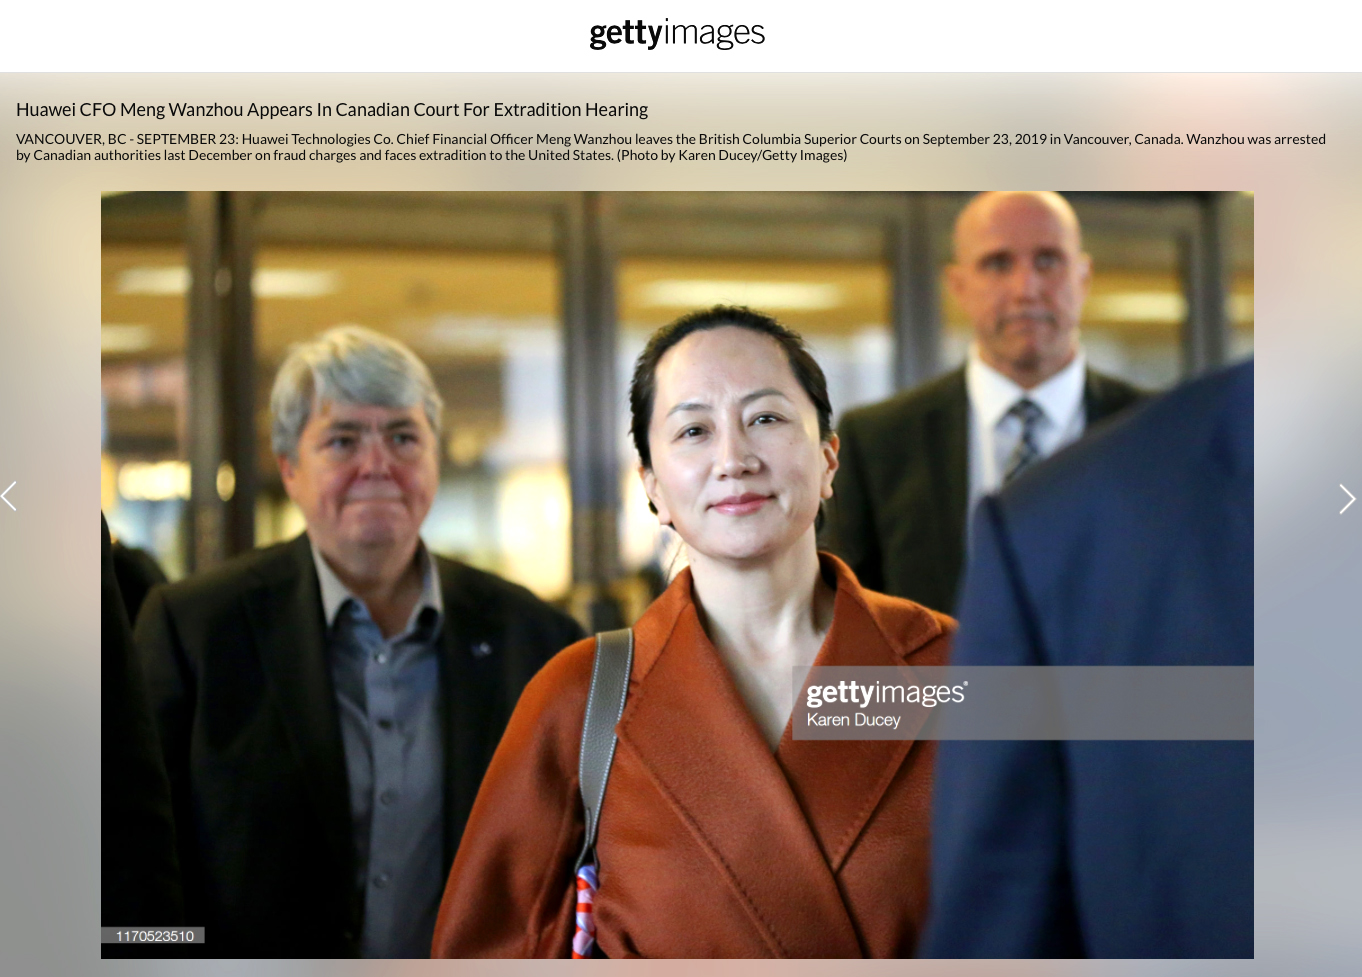 Huawei CFO Meng Wanzhou Appears In Canadian Court For Extradition Hearing, Photos for Getty Images, September 23, 2019.